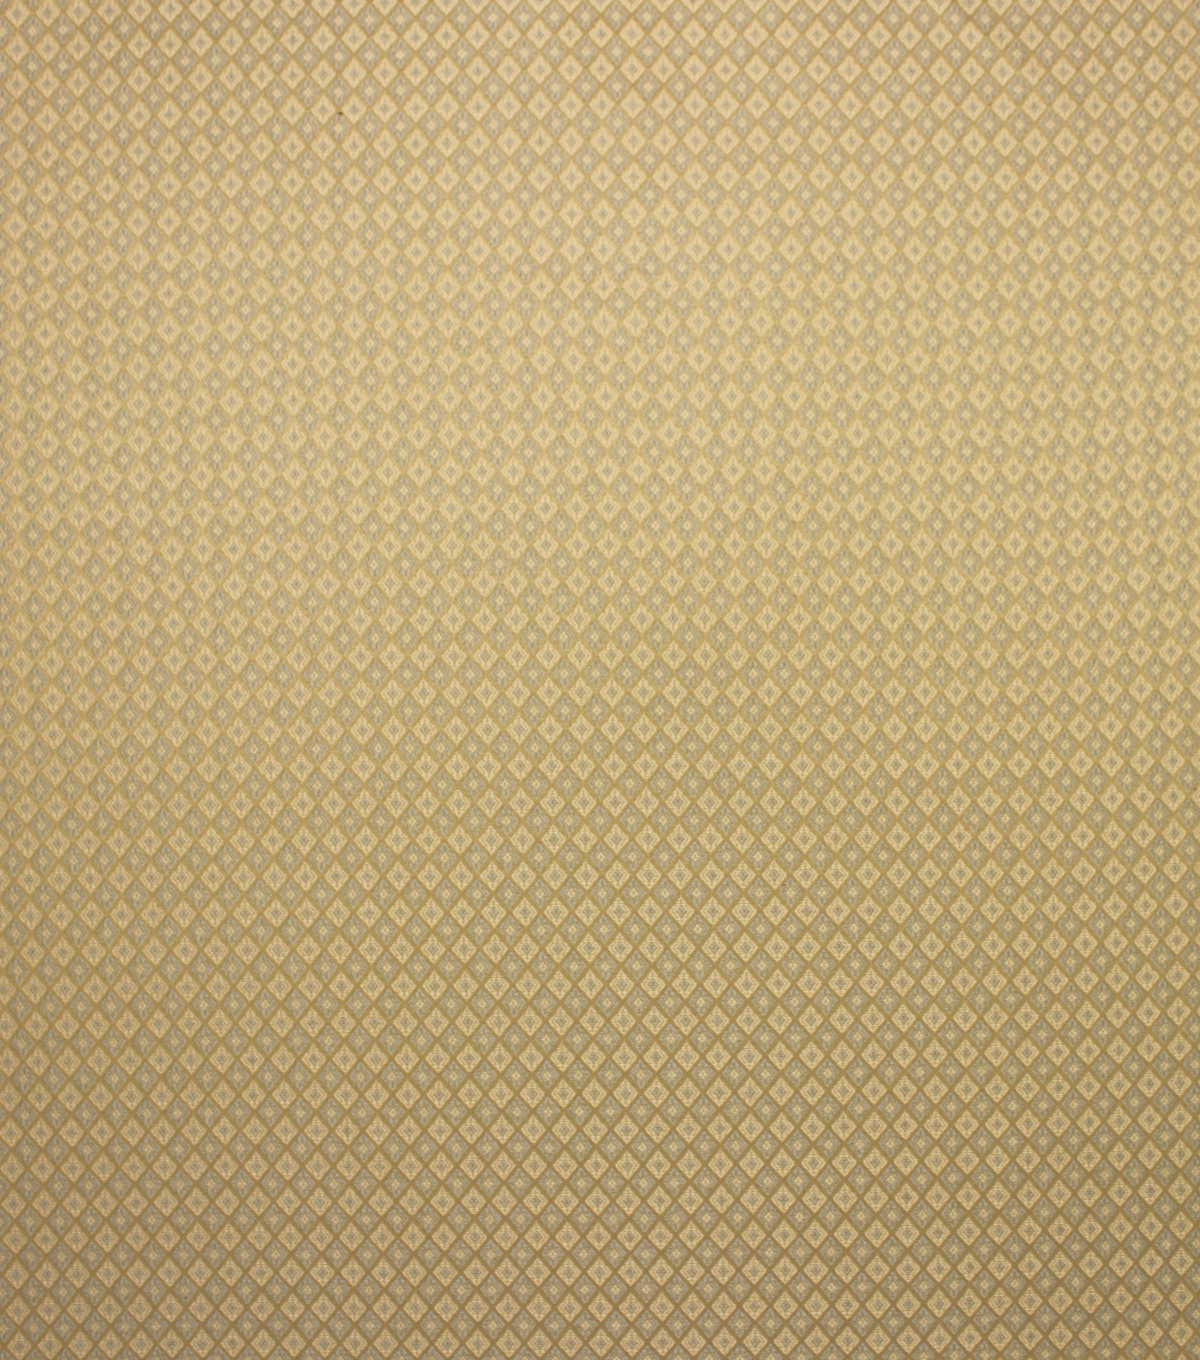 Upholstery Fabric-Barrow M6955-5605 Powder